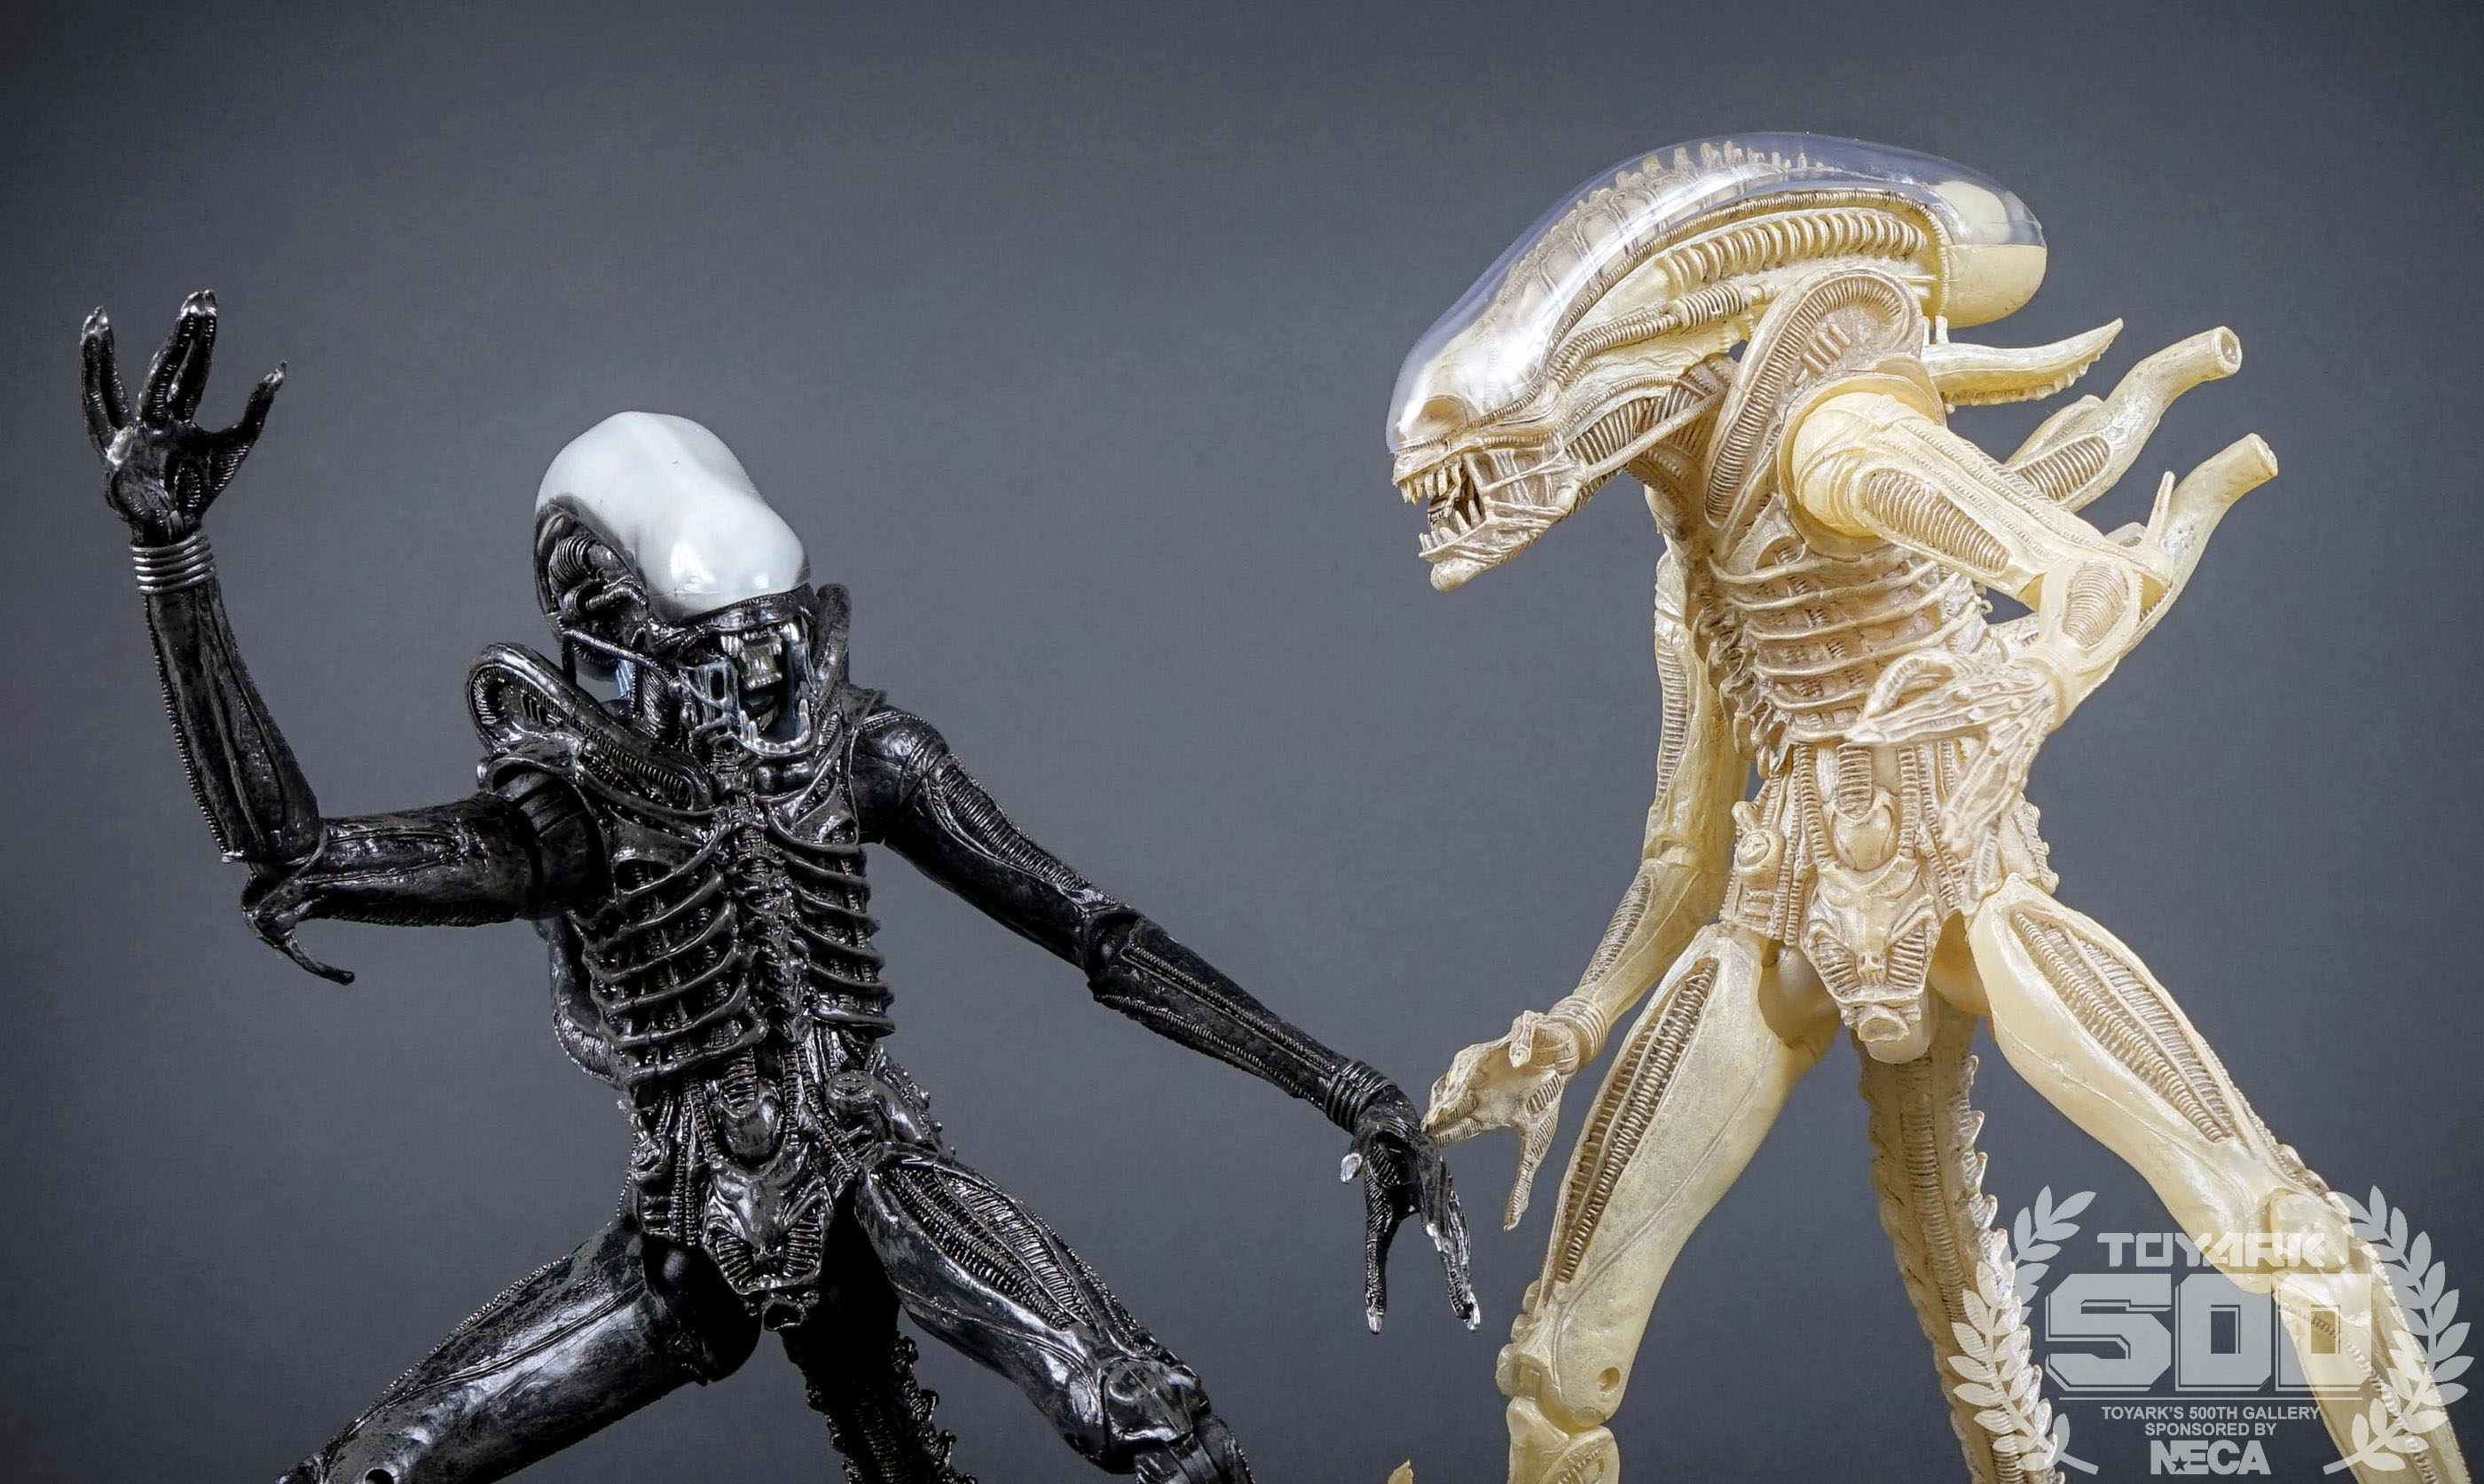 http://news.toyark.com/wp-content/uploads/sites/4/2016/01/Alien-Series-7-NECA-115.jpg